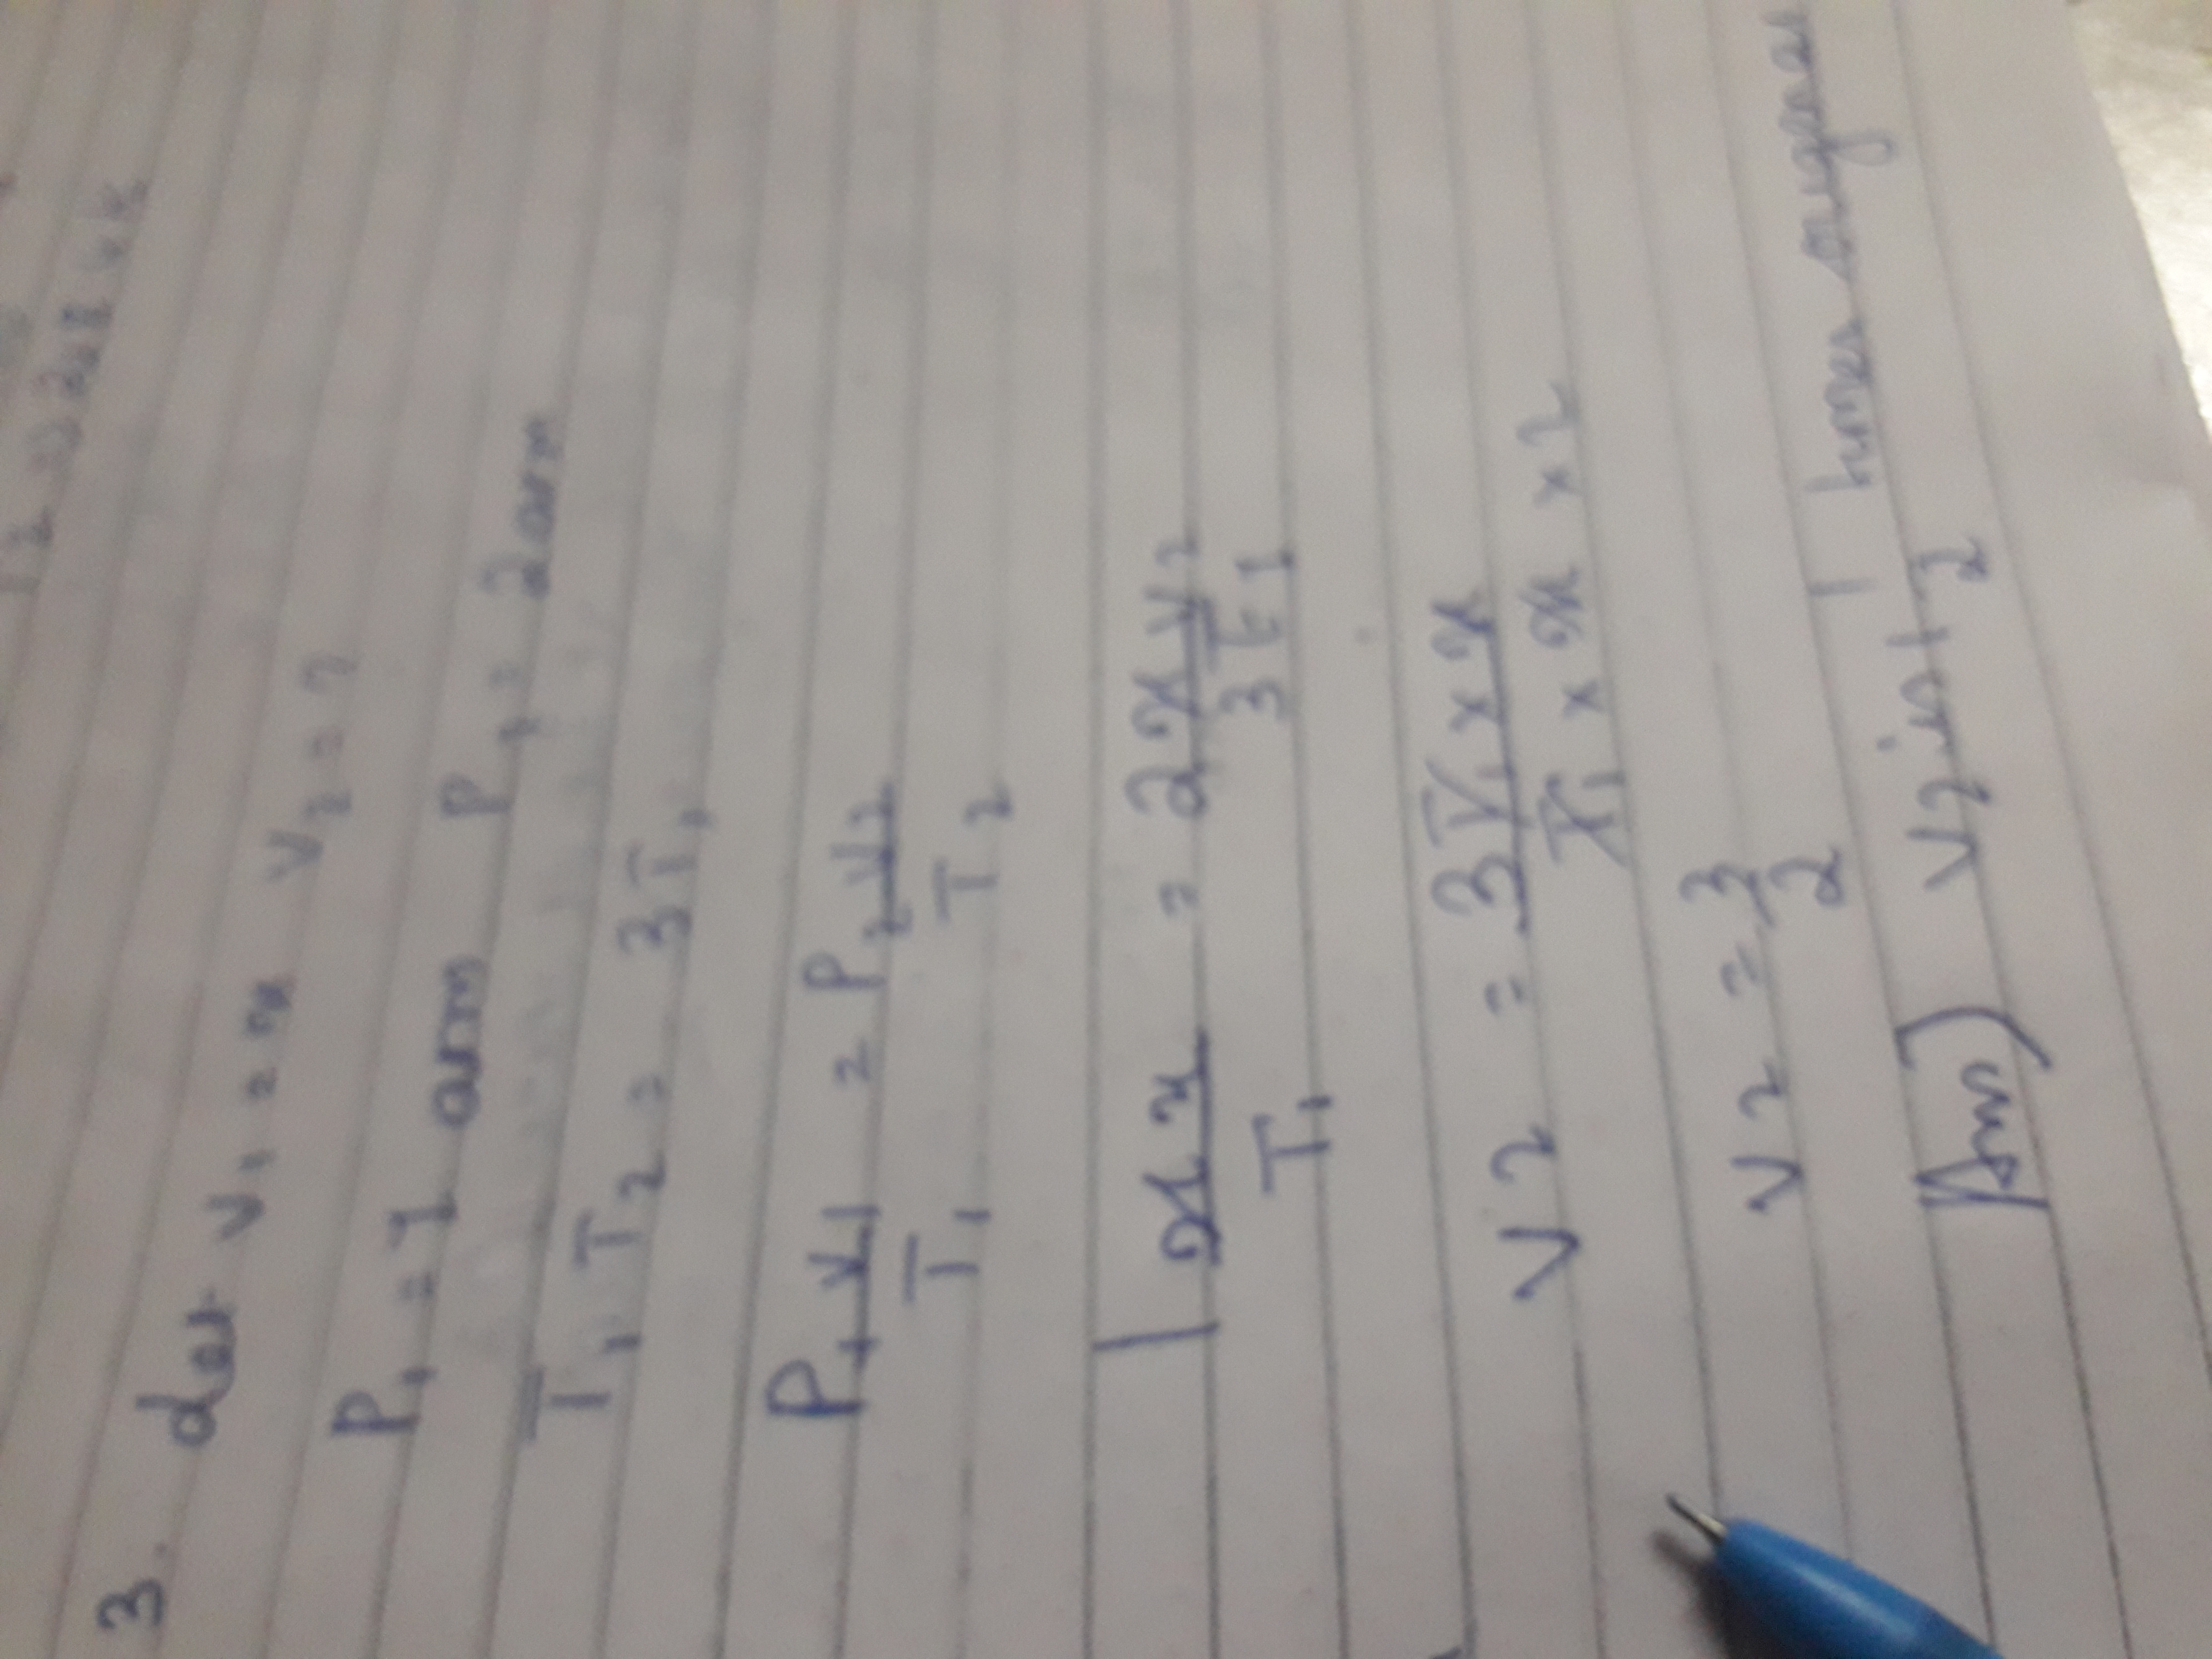 calculate the final volume of a gas x if the original pressure of